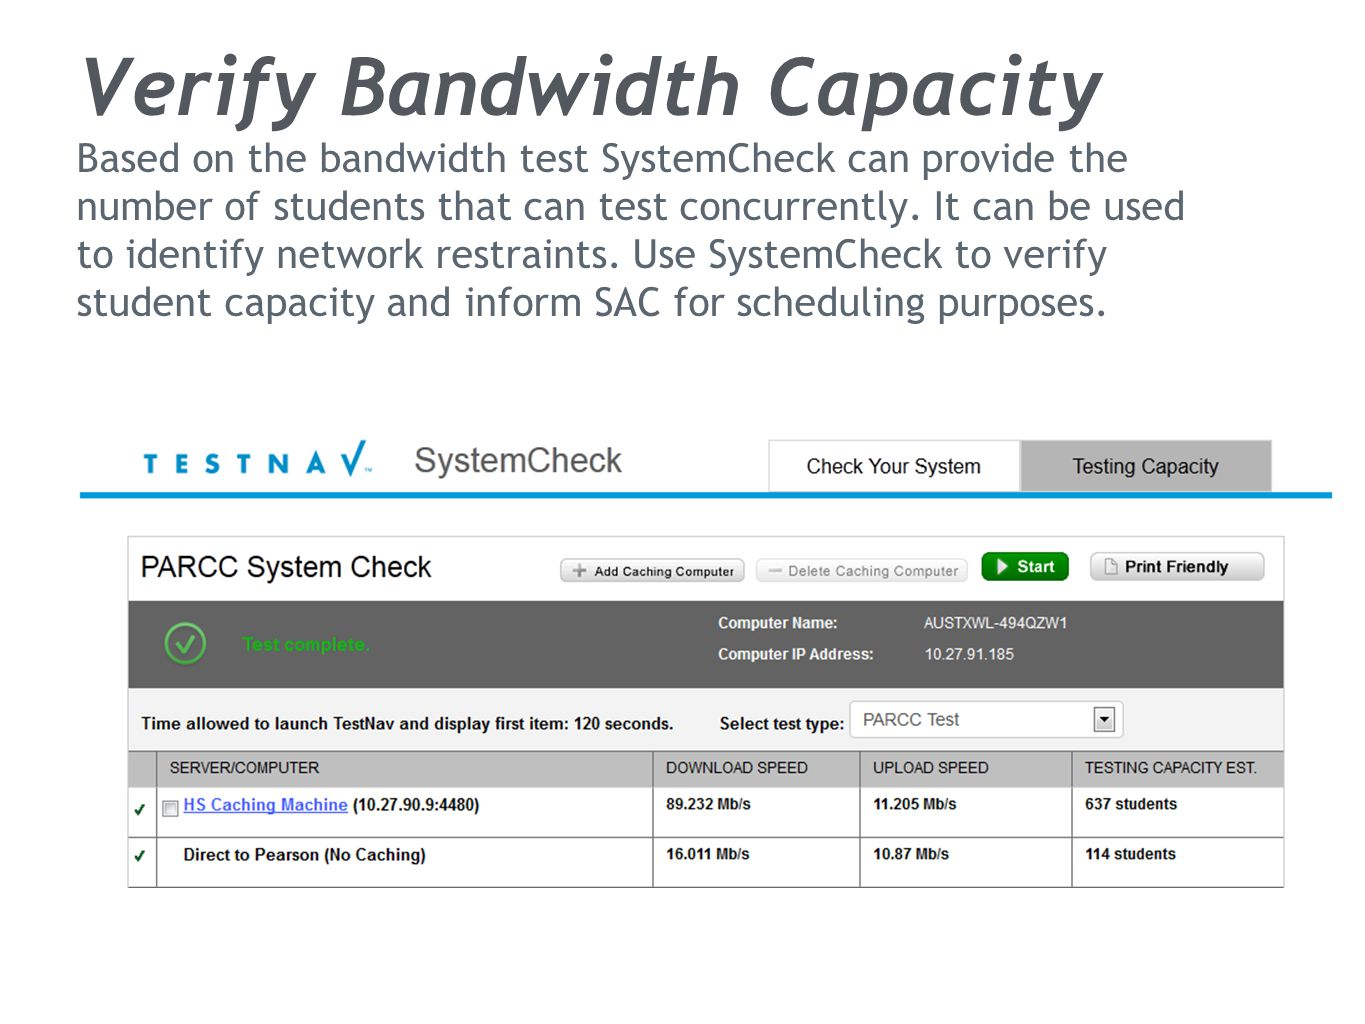 Verify Bandwidth Capacity Based on the bandwidth test SystemCheck can provide the number of students that can test concurrently.